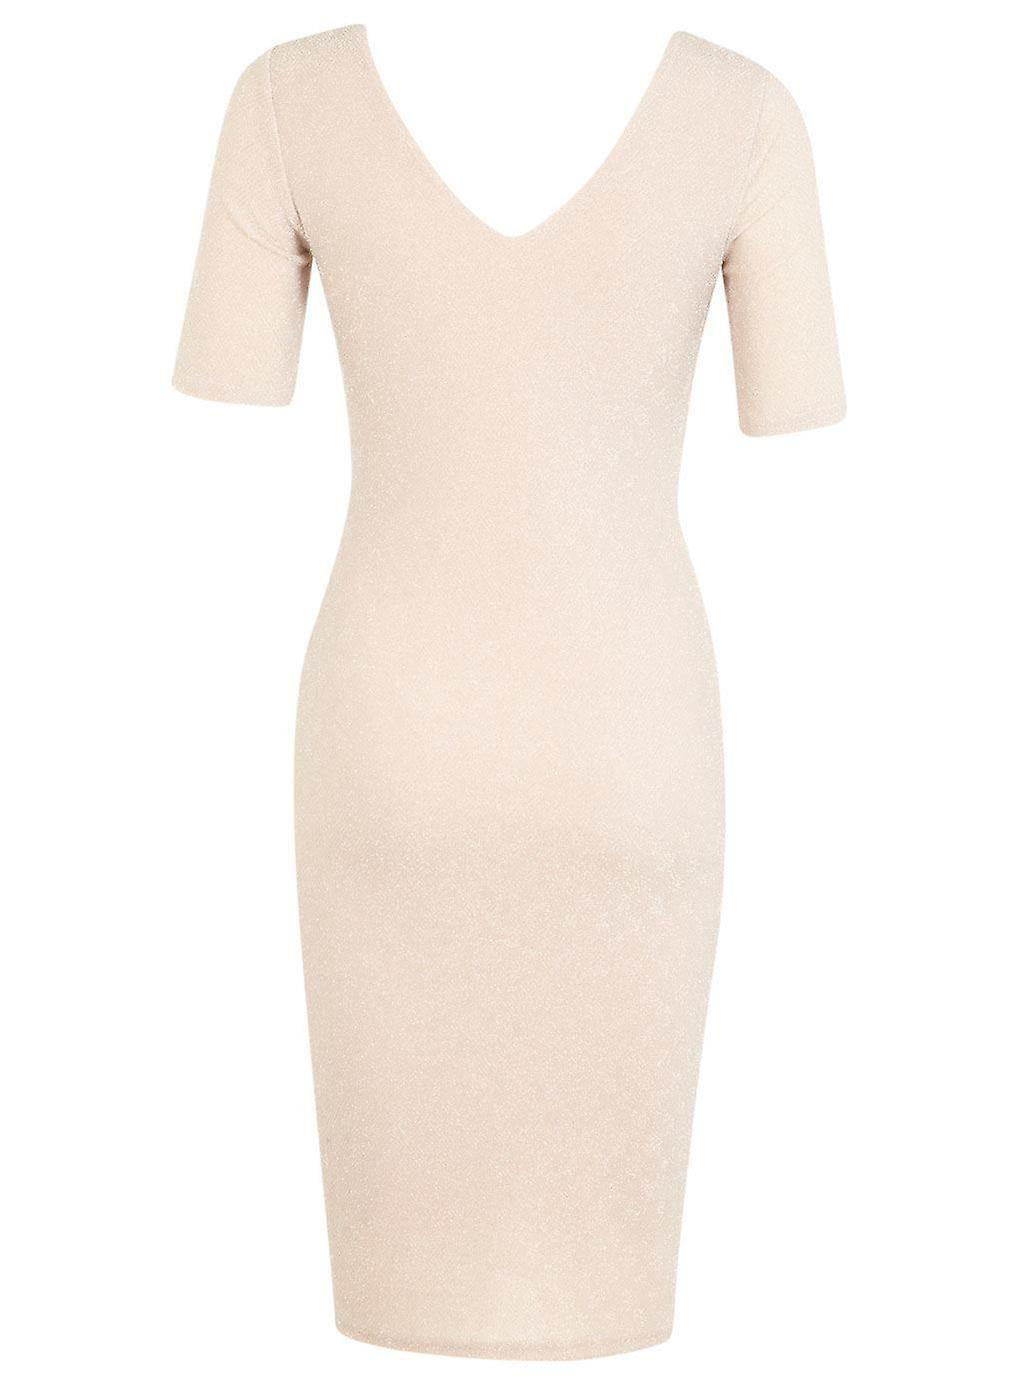 Miss Selfridge Nude Glitter Bodycon Dress